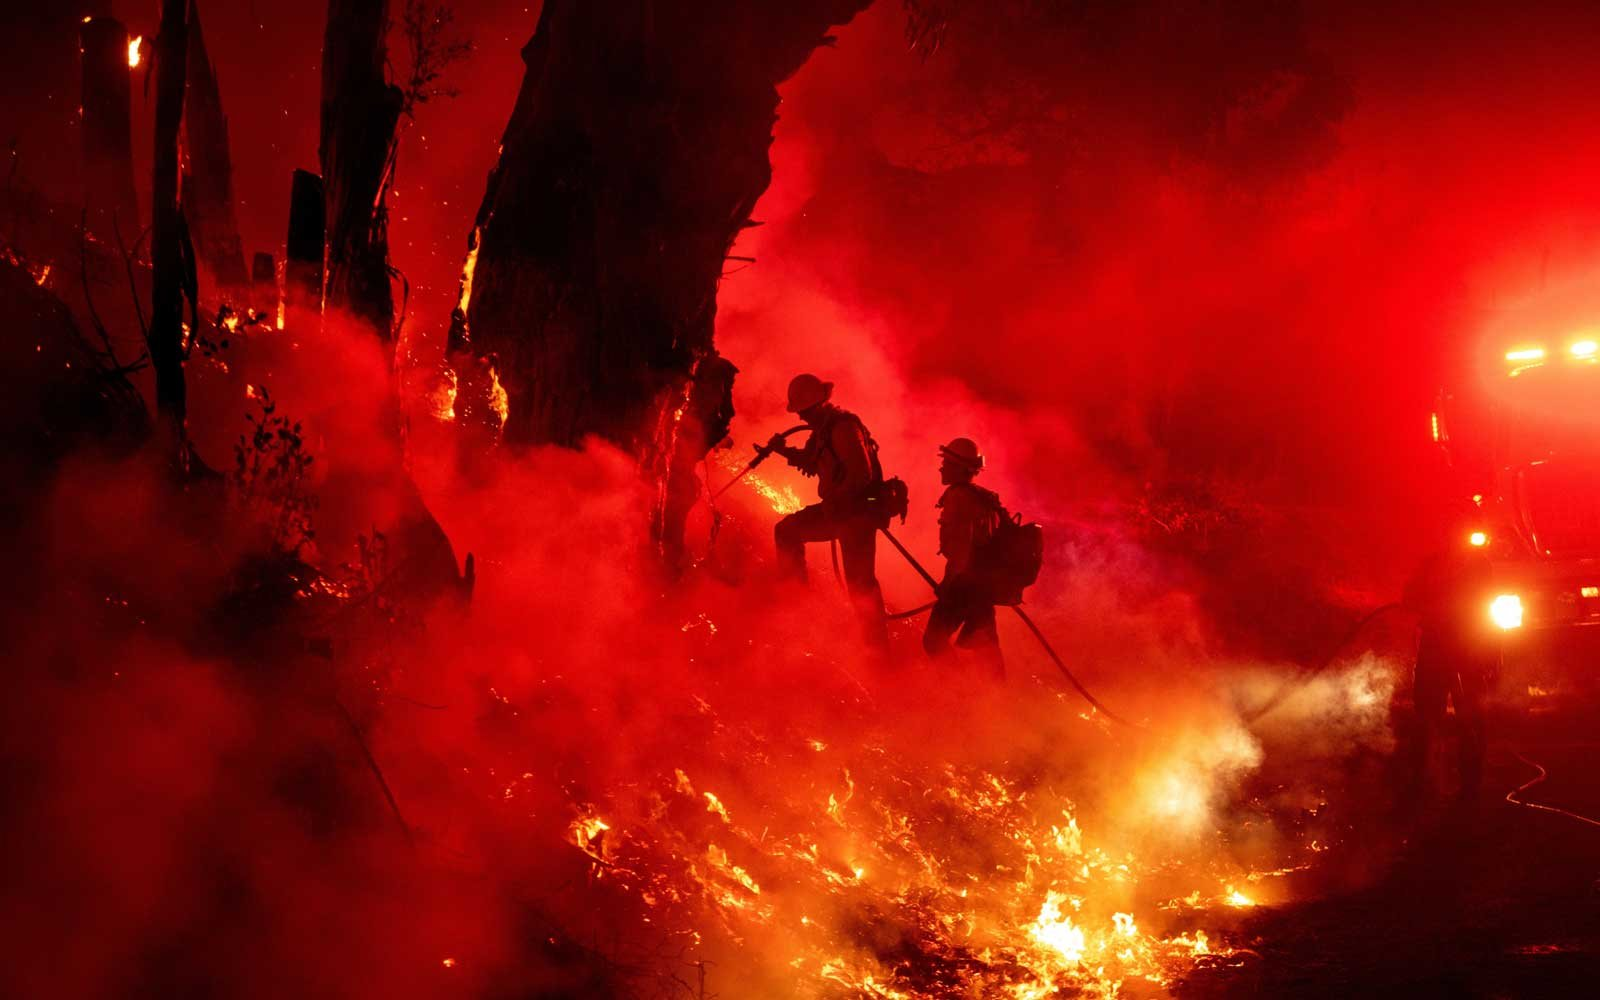 Firefighters work to control flames from a backfire during the Maria fire in Santa Paula, California on November 1, 2019.